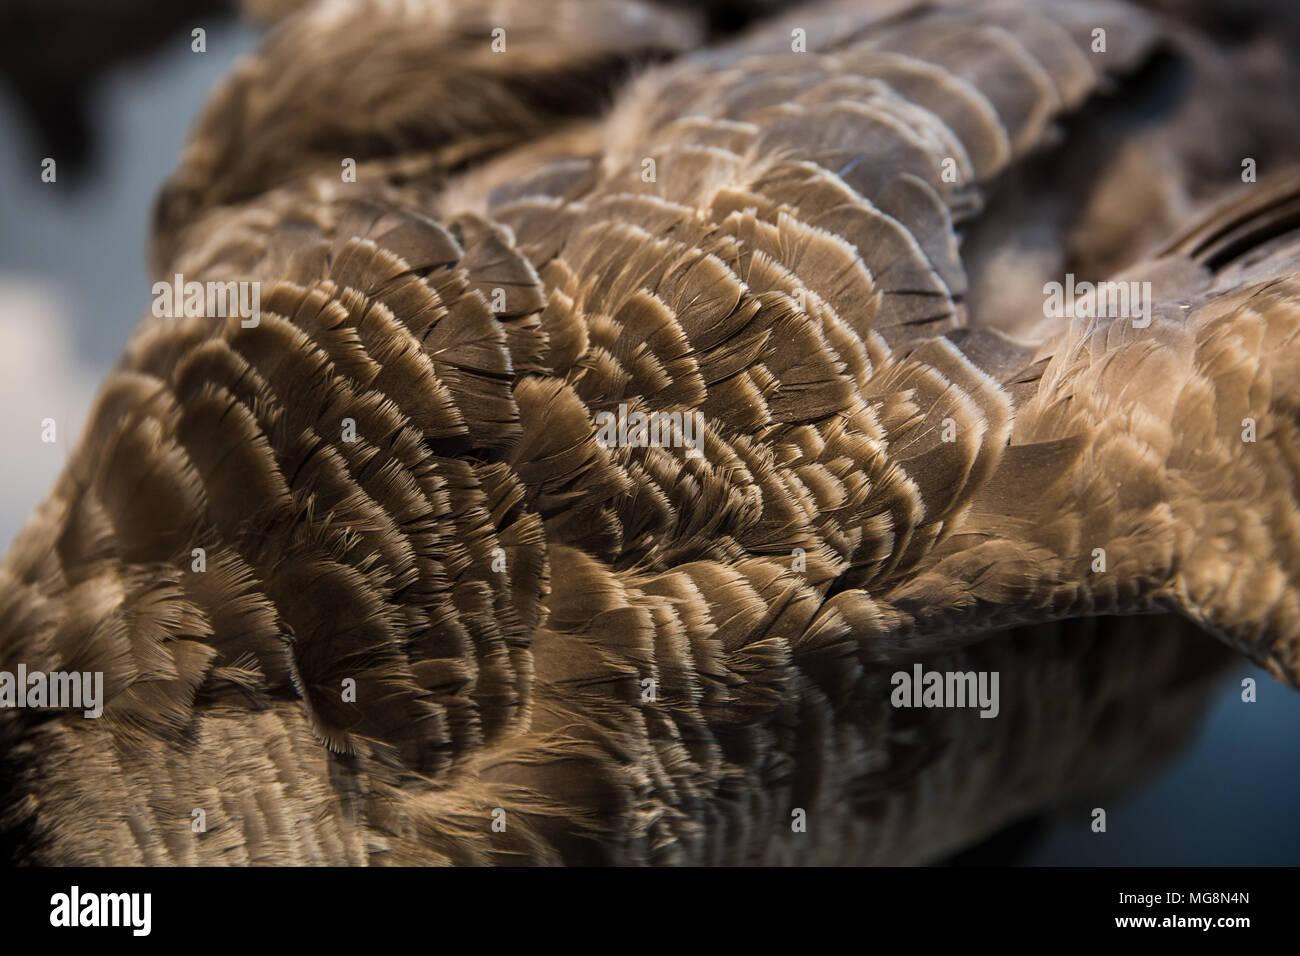 Details of Goose feathers - Stock Image